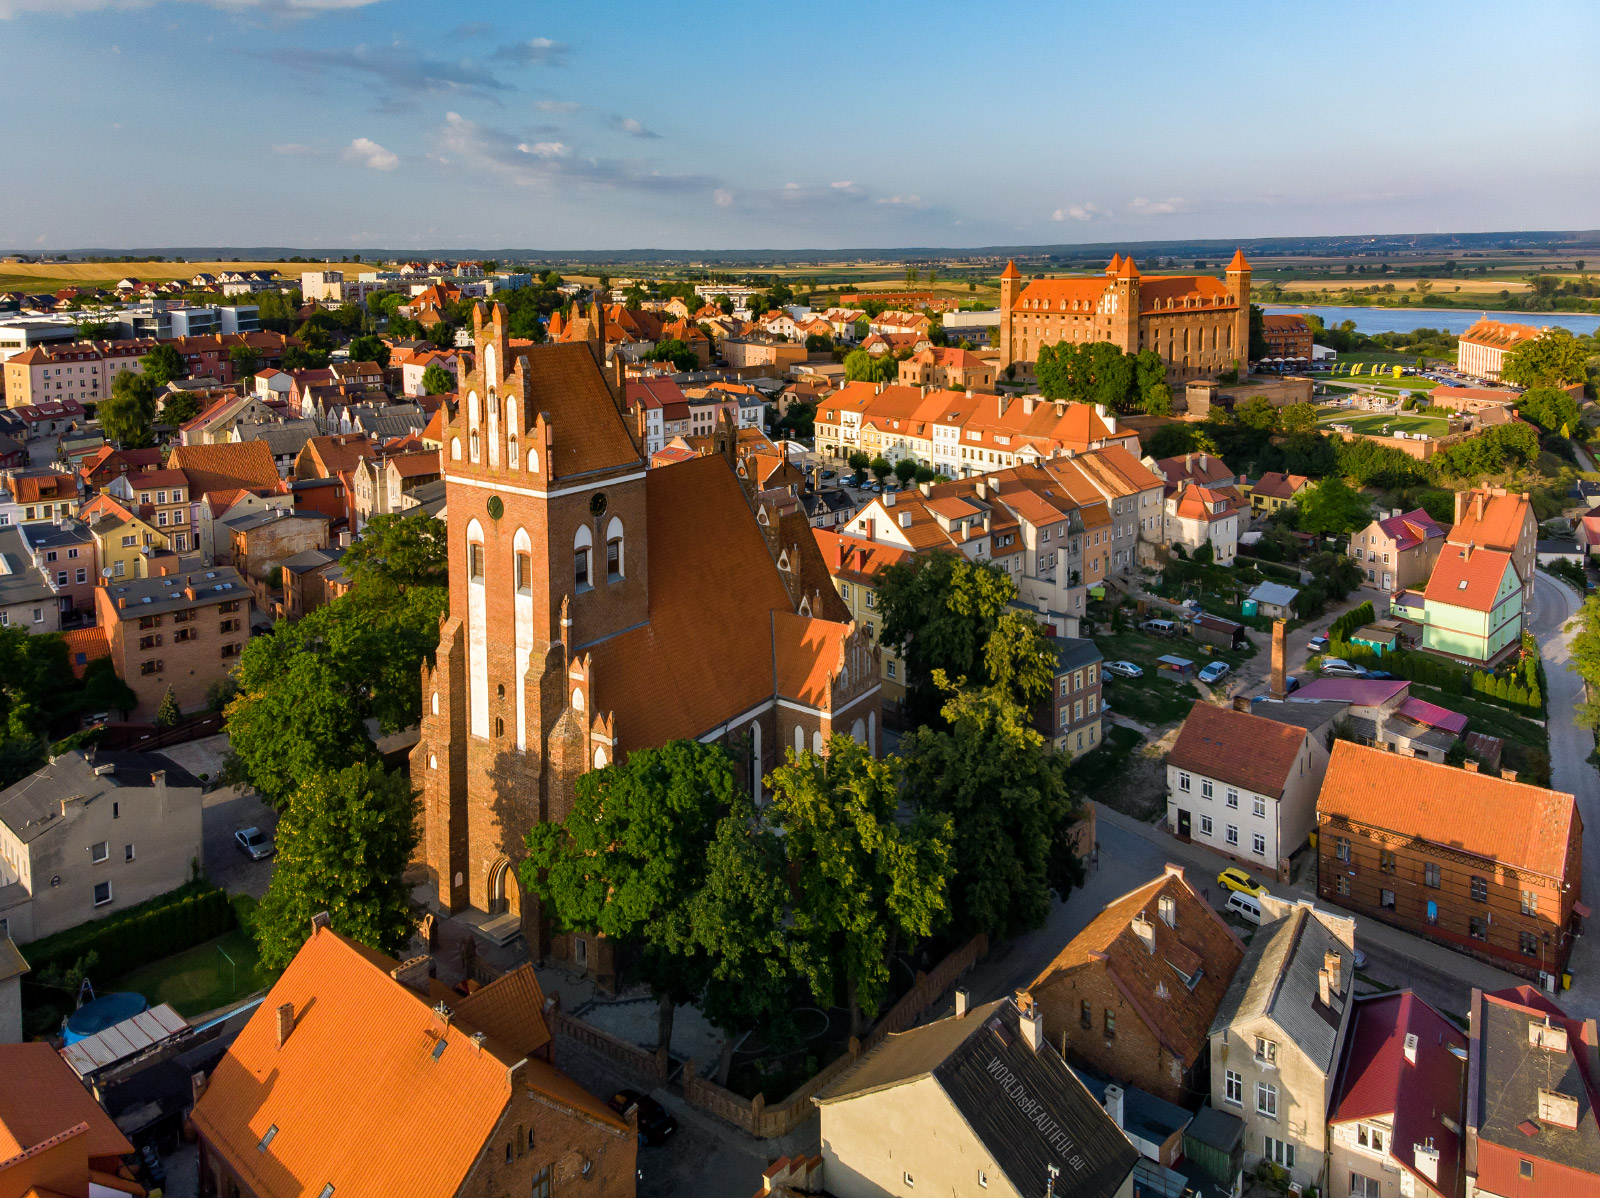 Gniew from a bird's eye view